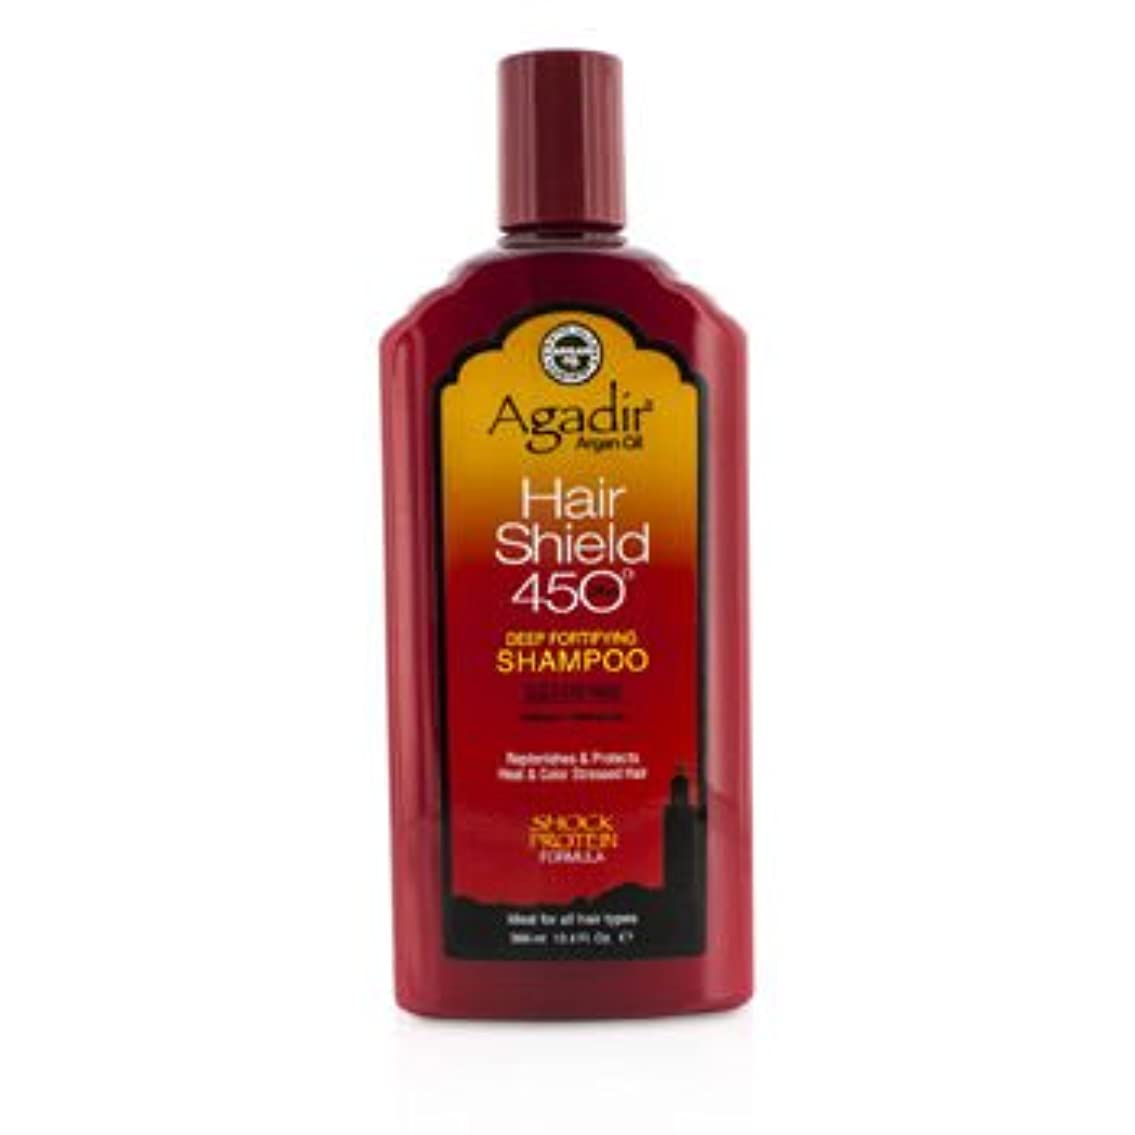 ダメージ社説協力する[Agadir Argan Oil] Hair Shield 450 Plus Deep Fortifying Shampoo - Sulfate Free (For All Hair Types) 366ml/12.4oz